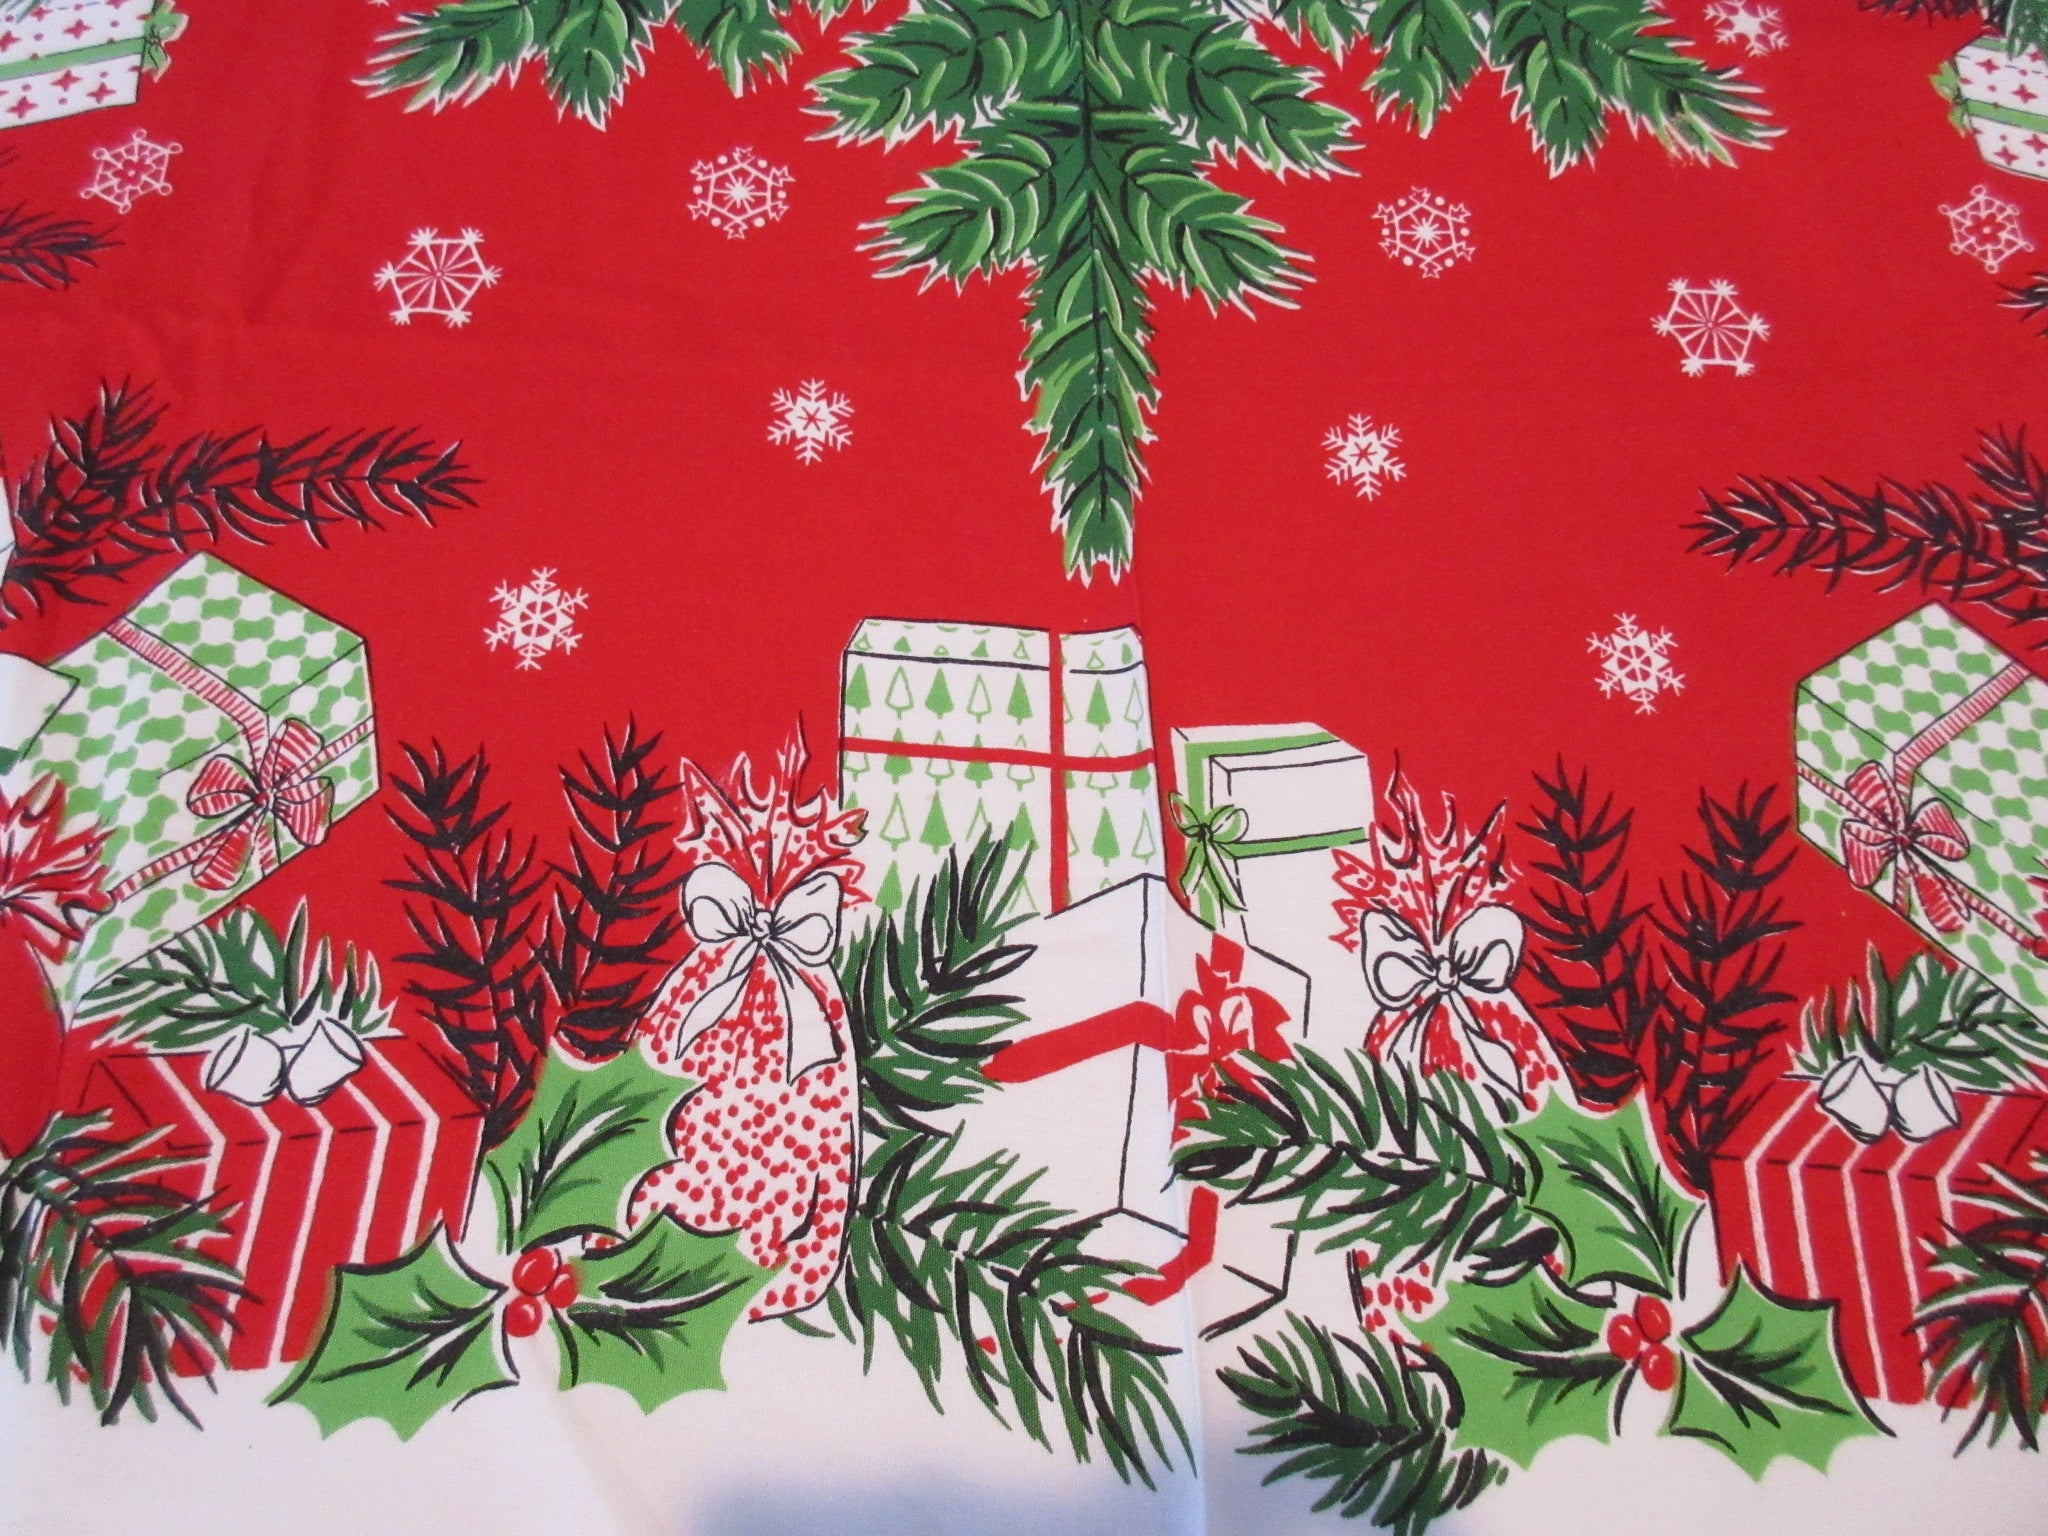 Pine and Presents on Red Christmas Runner? Novelty Vintage Printed Tablecloth (52 X 43)